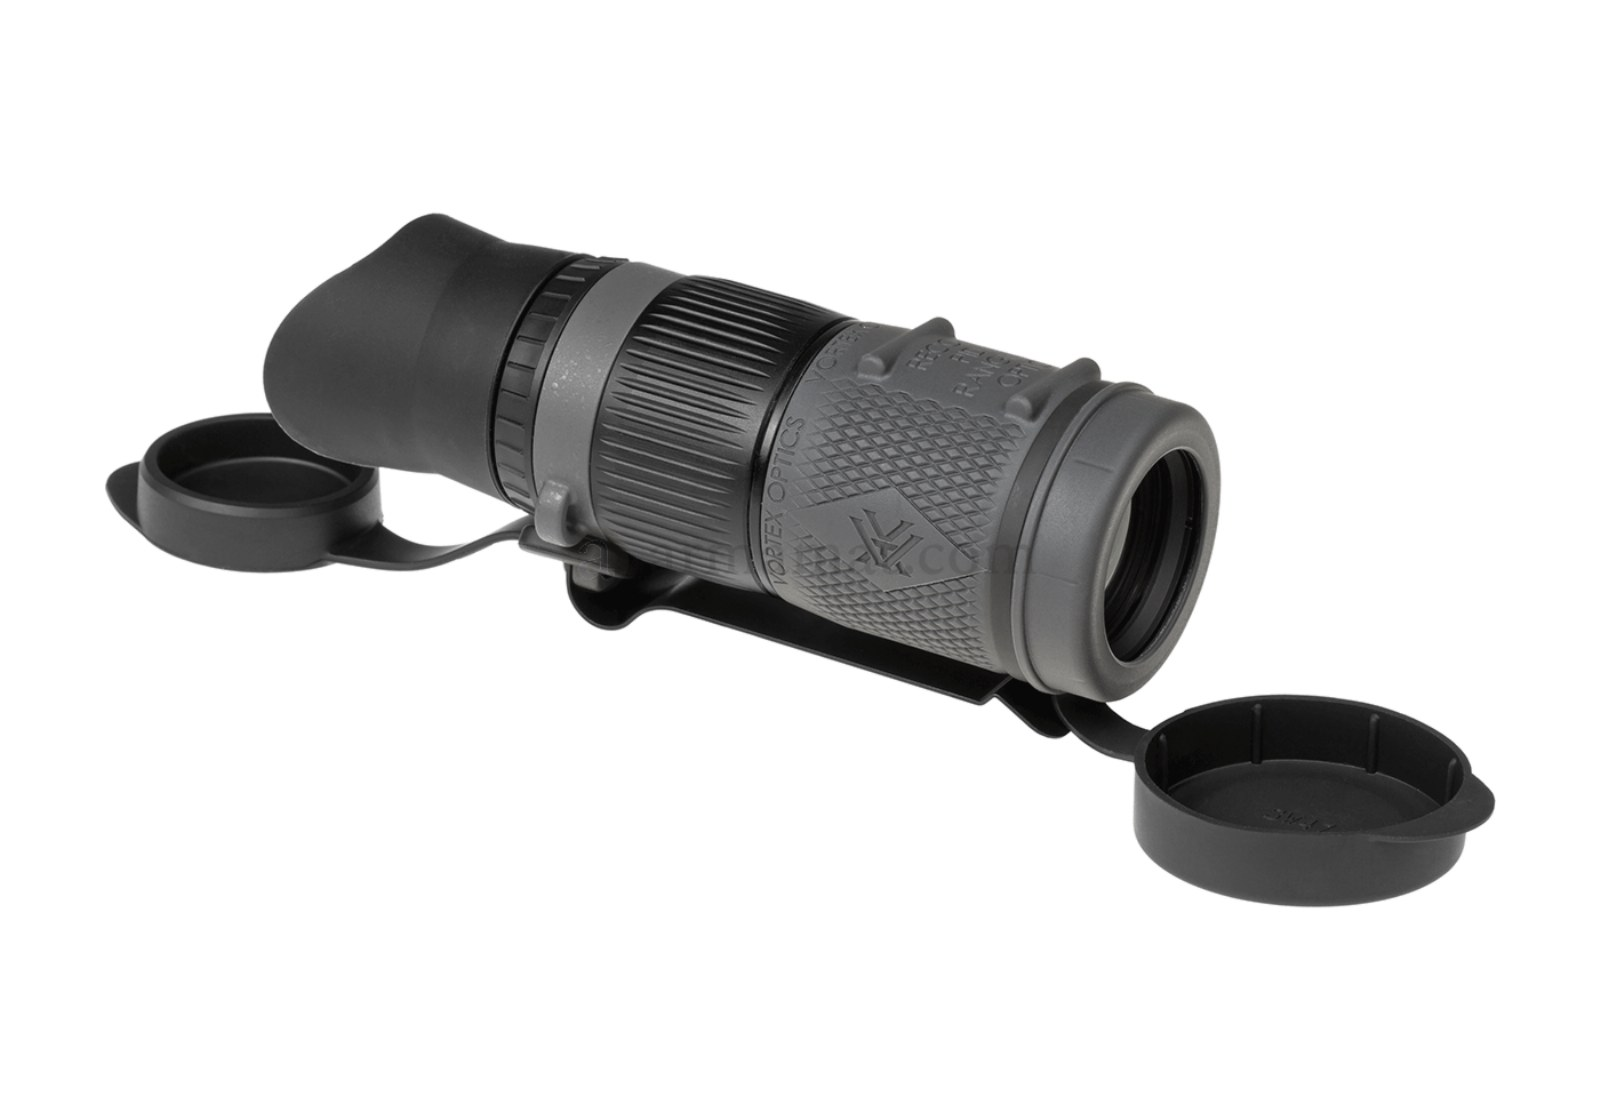 Vortex Optics® Recce Pro HD 8x32 R/T MRAD Hunting, Military Monocular